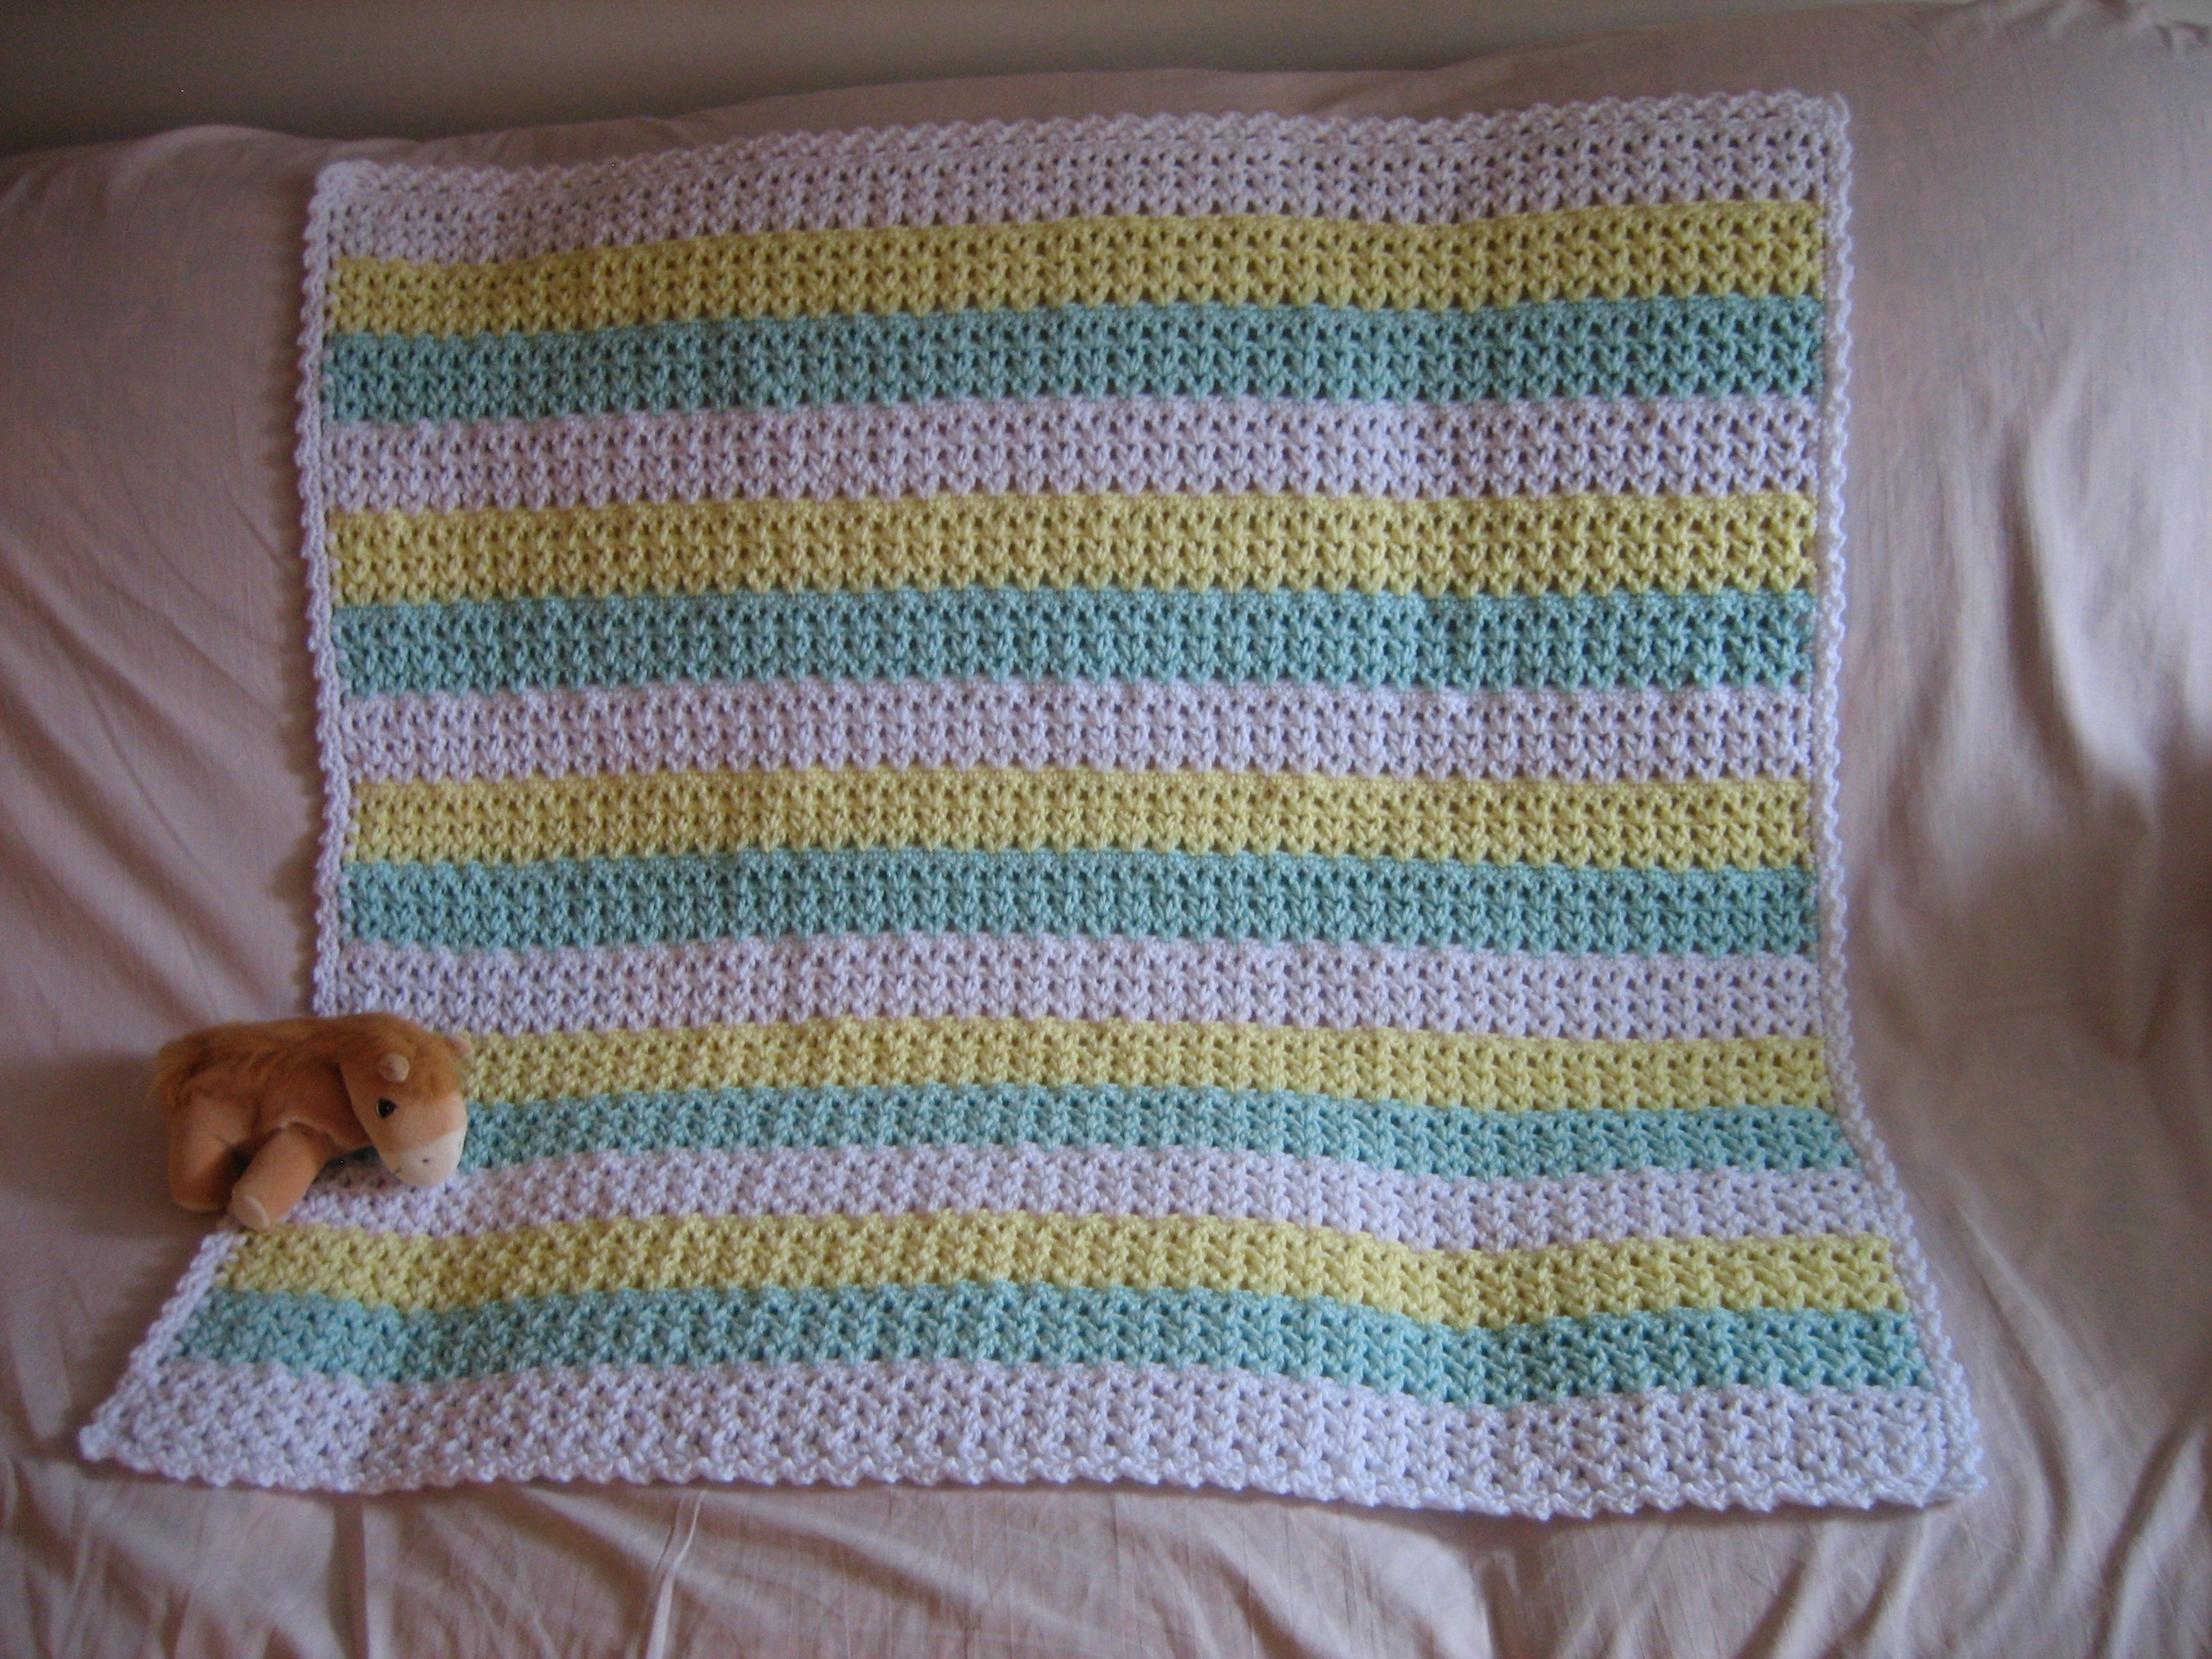 Striped Crochet Afghan | FaveCrafts.com